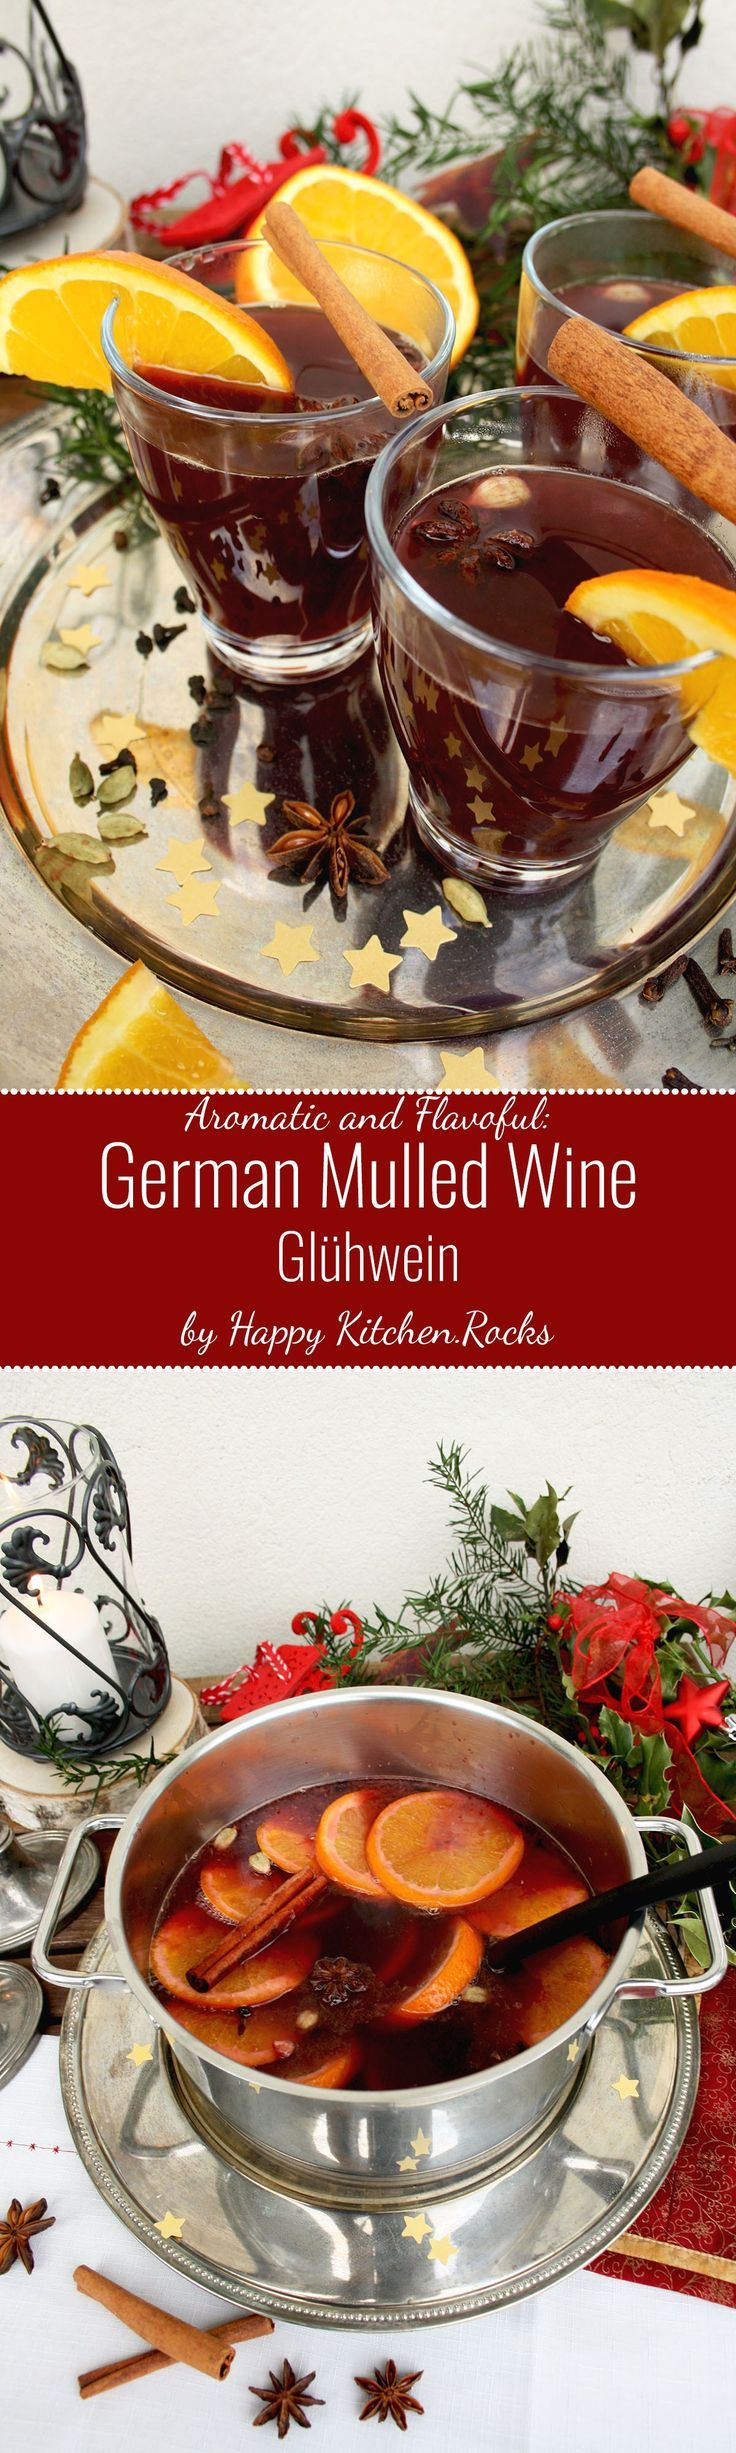 German Mulled Wine Gluhwein Contains All Traditional Christmas Spices As Well As A Fruity Hint Of Citru Christmas Food Mulled Wine Christmas Spices